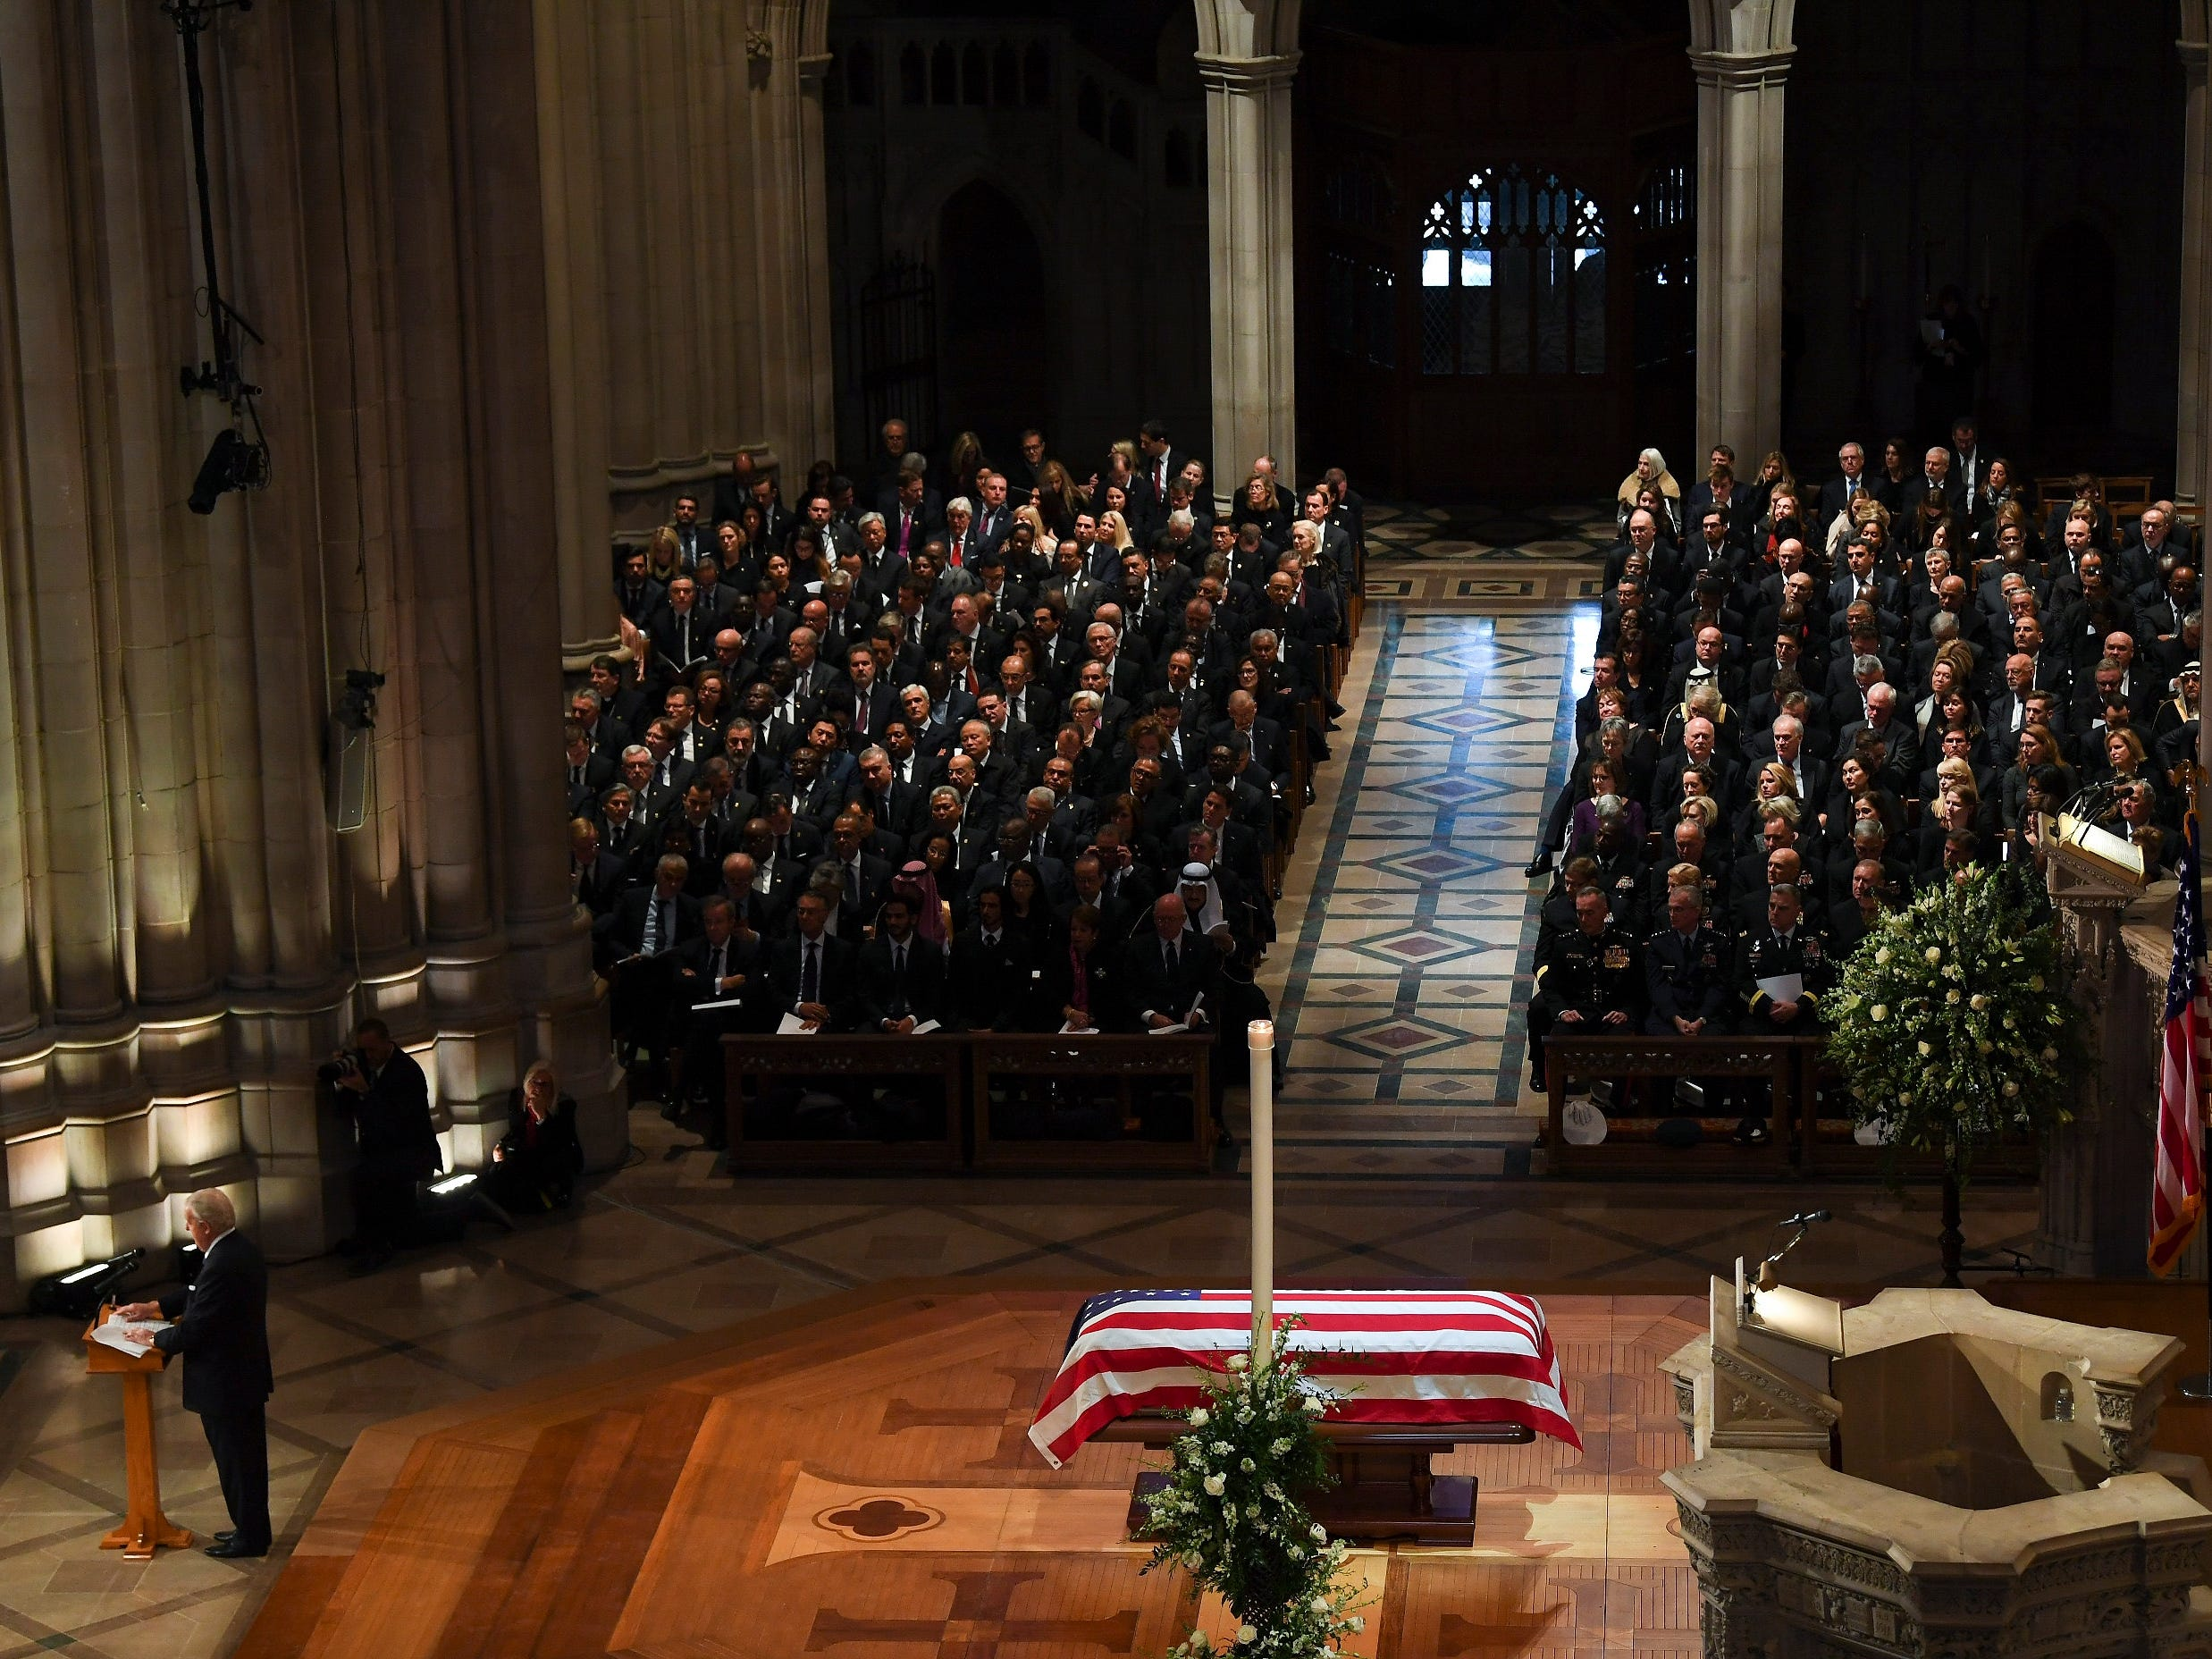 Former Prime Minister of Canada Brian Mulroney speaks during the state funeral for former President George H.W. Bush at the Washington National Cathedral, Dec. 5, 2018, in Washington.